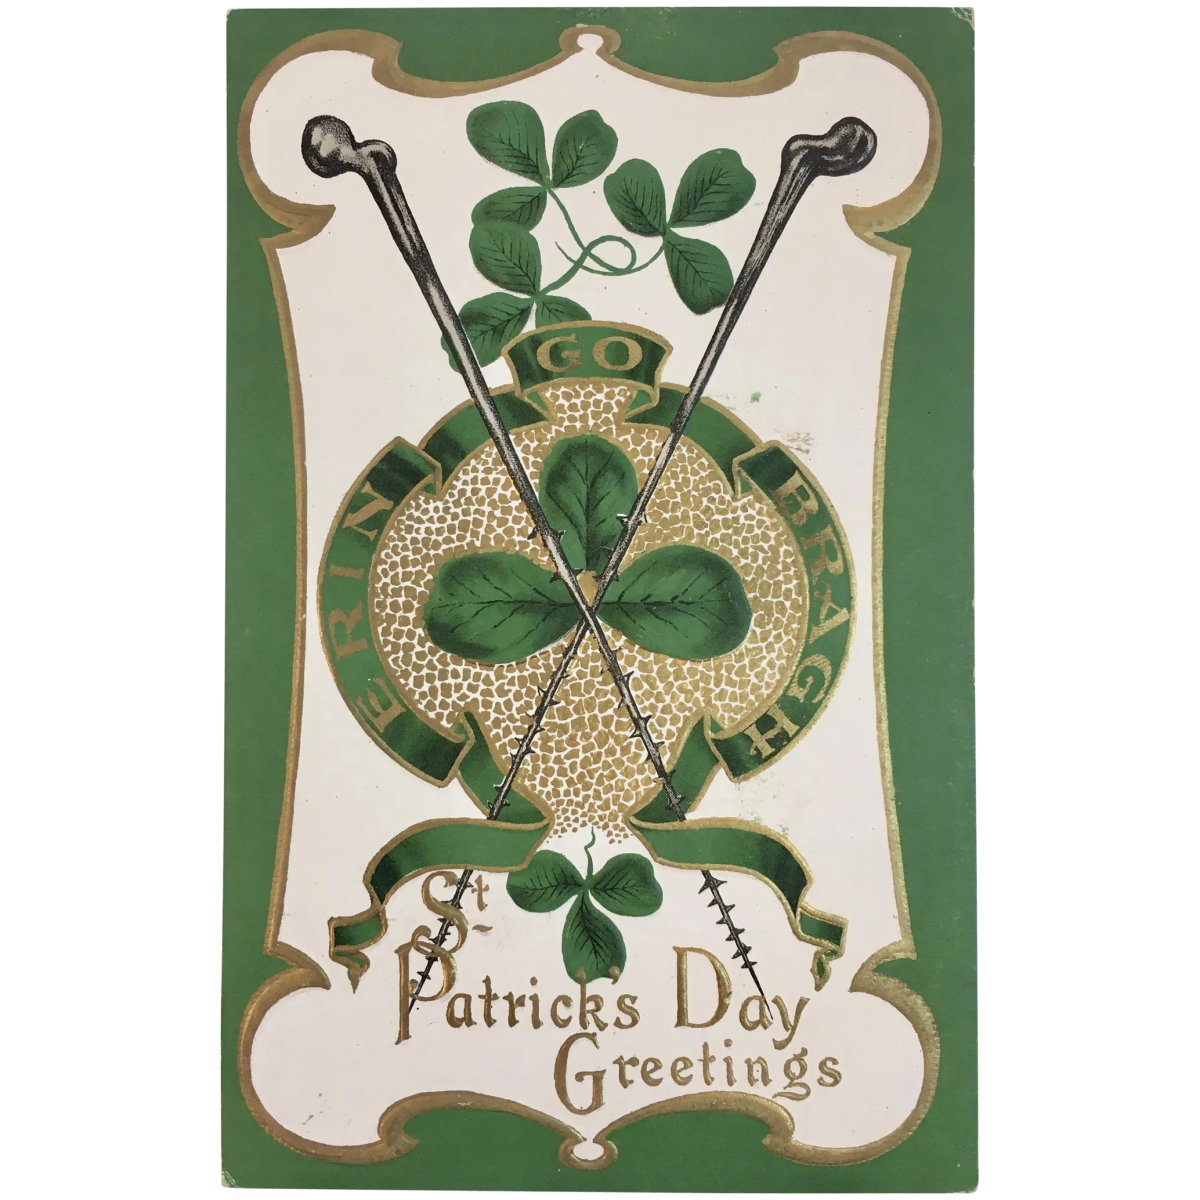 This St. Patrick's Day postcard features the famous Blackthorn walking sticks and several good-luck shamrocks; $12.